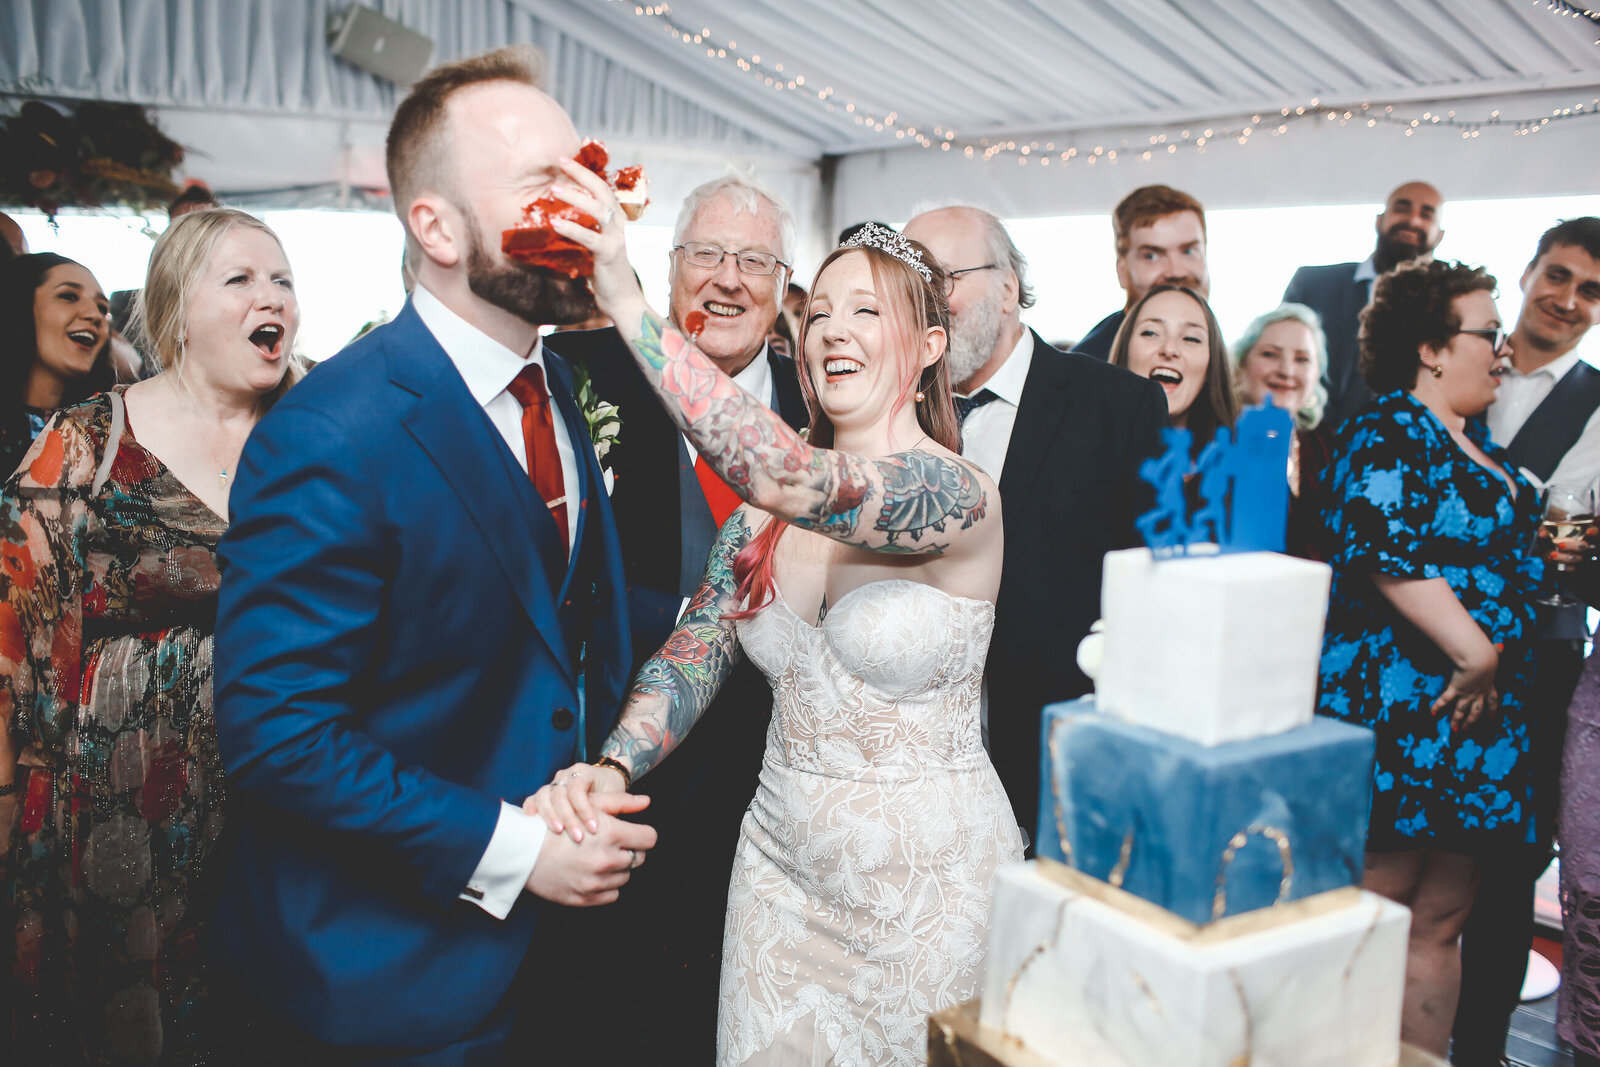 WP-BRIDE-AND-GROOM-CAKE-SMASH-IN-THE-FACE-LONDON-WEDDING_0020